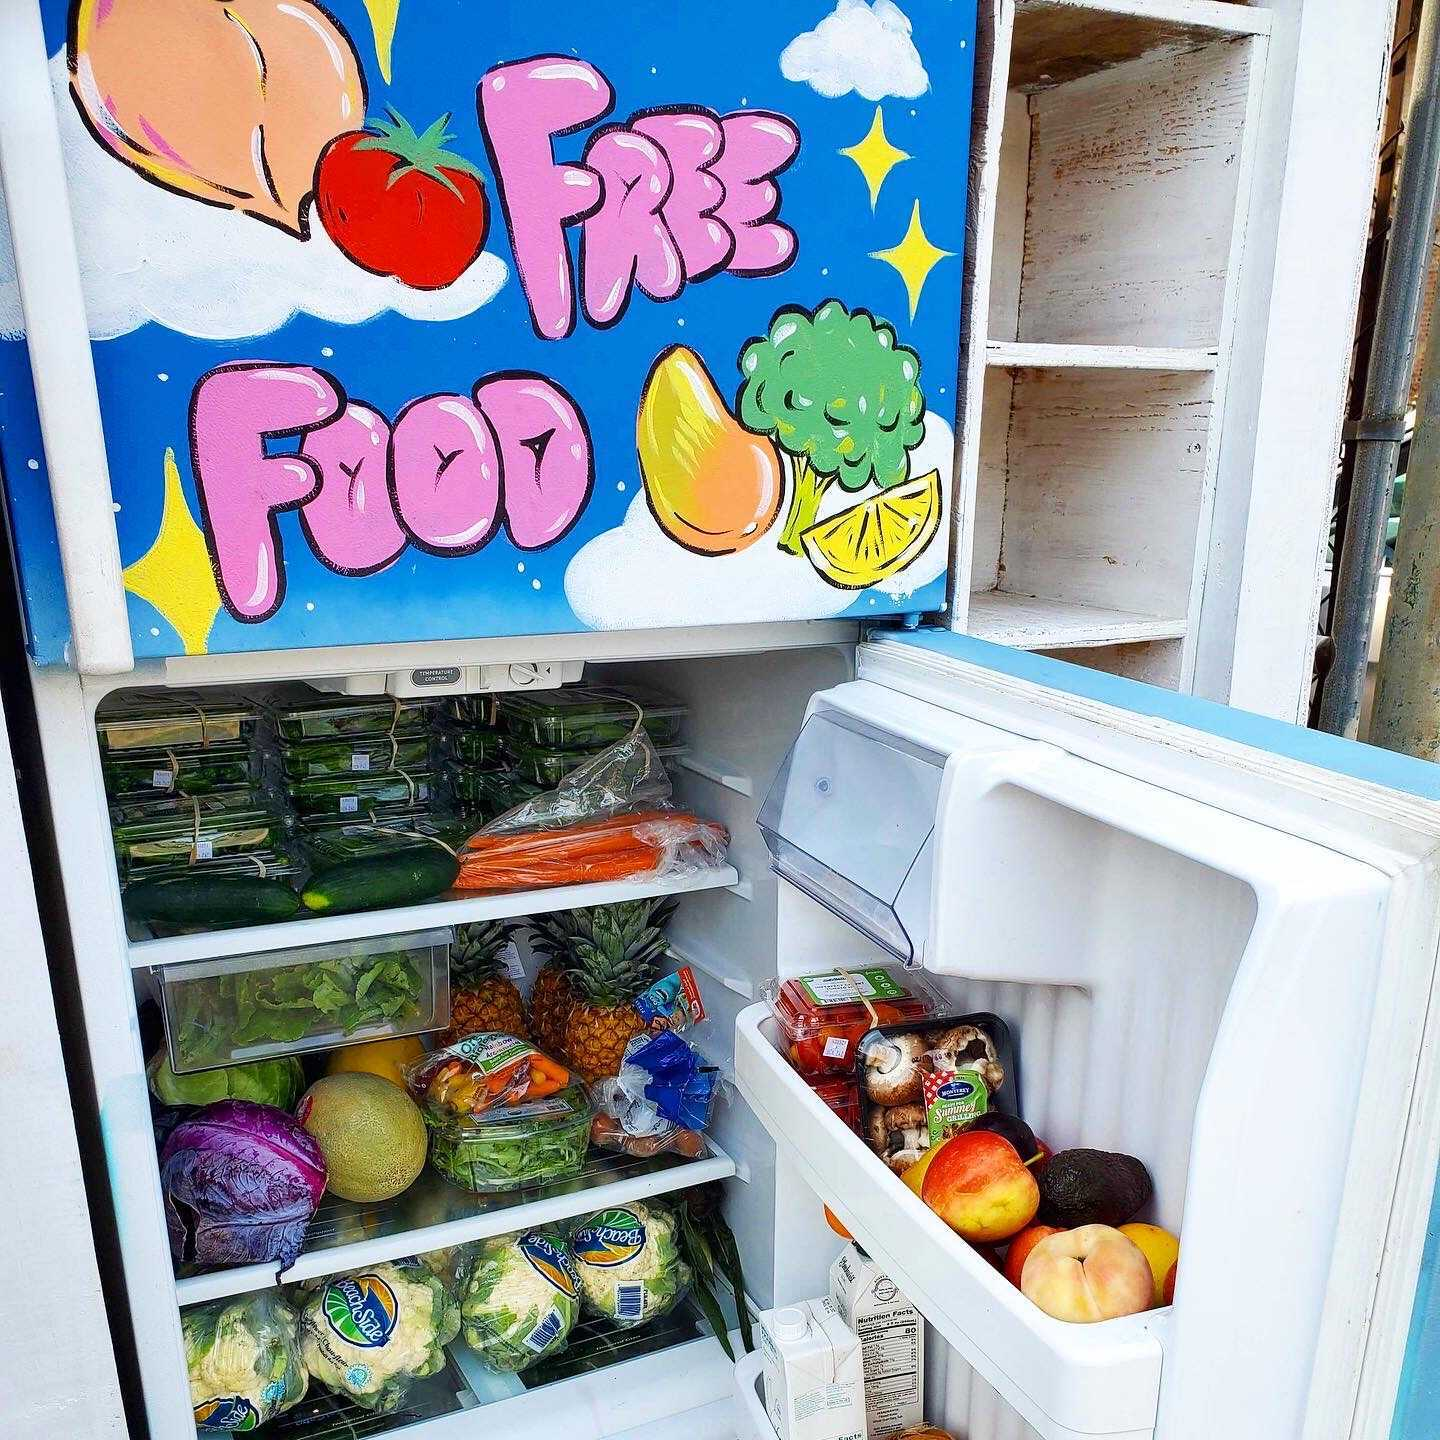 "Dirt Farms Fridge in Chicago's Humboldt Park neighborhood. ""Free Food"" is painted on the front and the fridge is stocked with fresh produce."